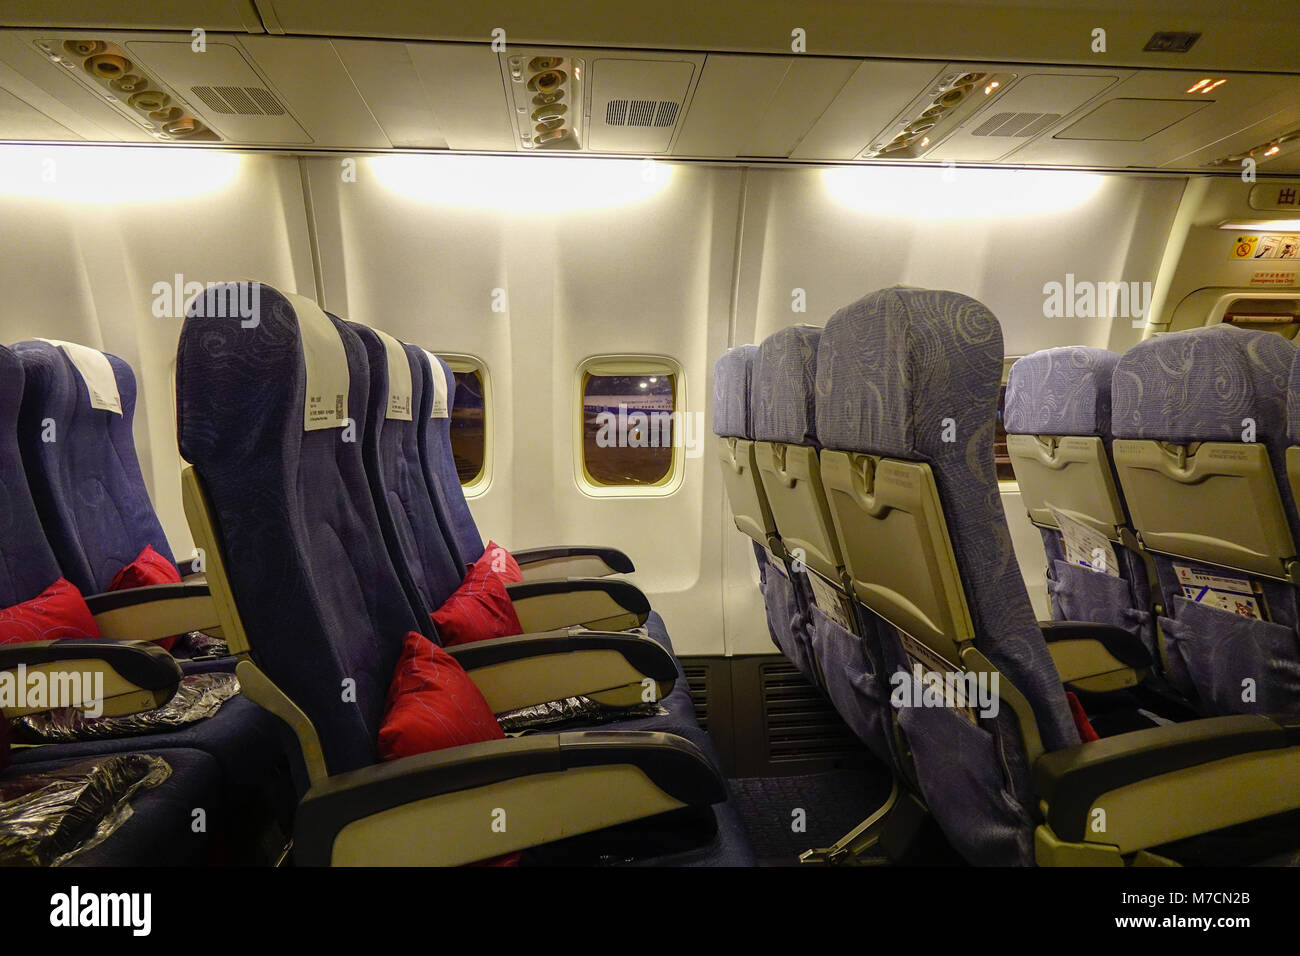 Beijing, China - Feb 17, 2018. Inside of a civil aircraft at Beijing Capital Airport, China. - Stock Image